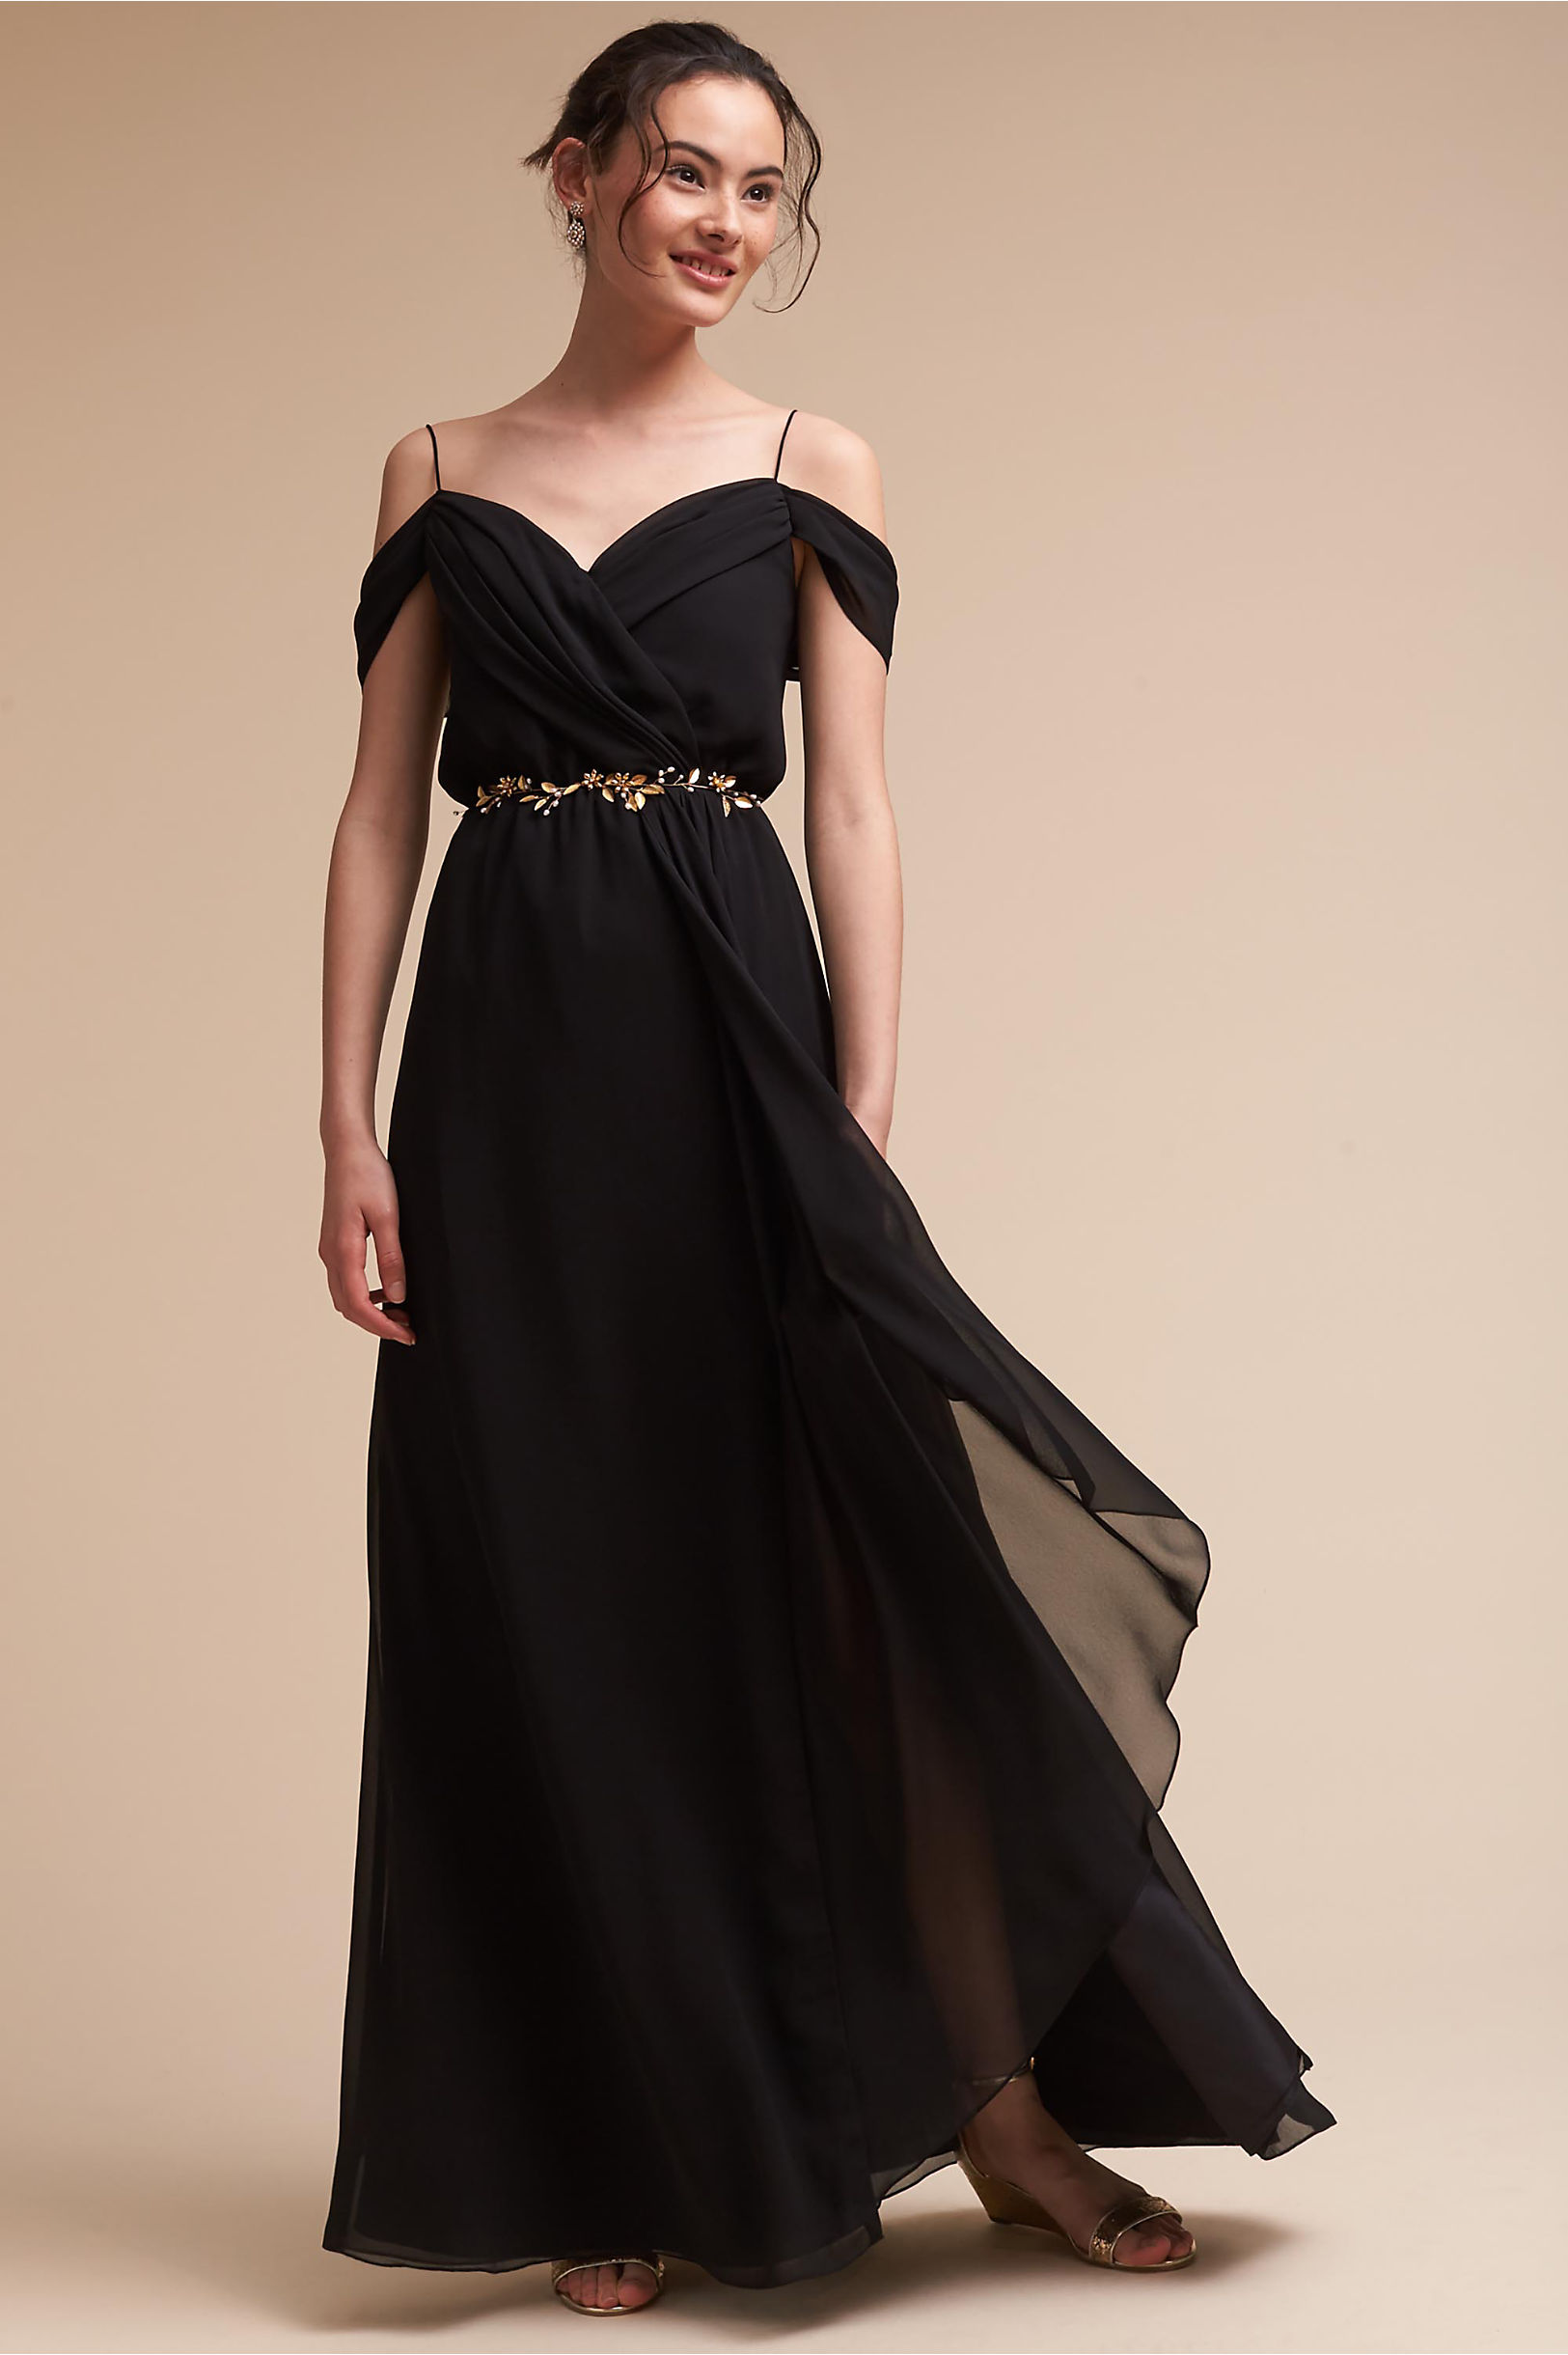 Black Off Shoulder Sleeveless A-line Long Chiffon Bridesmaid Dress with Crystal Belt